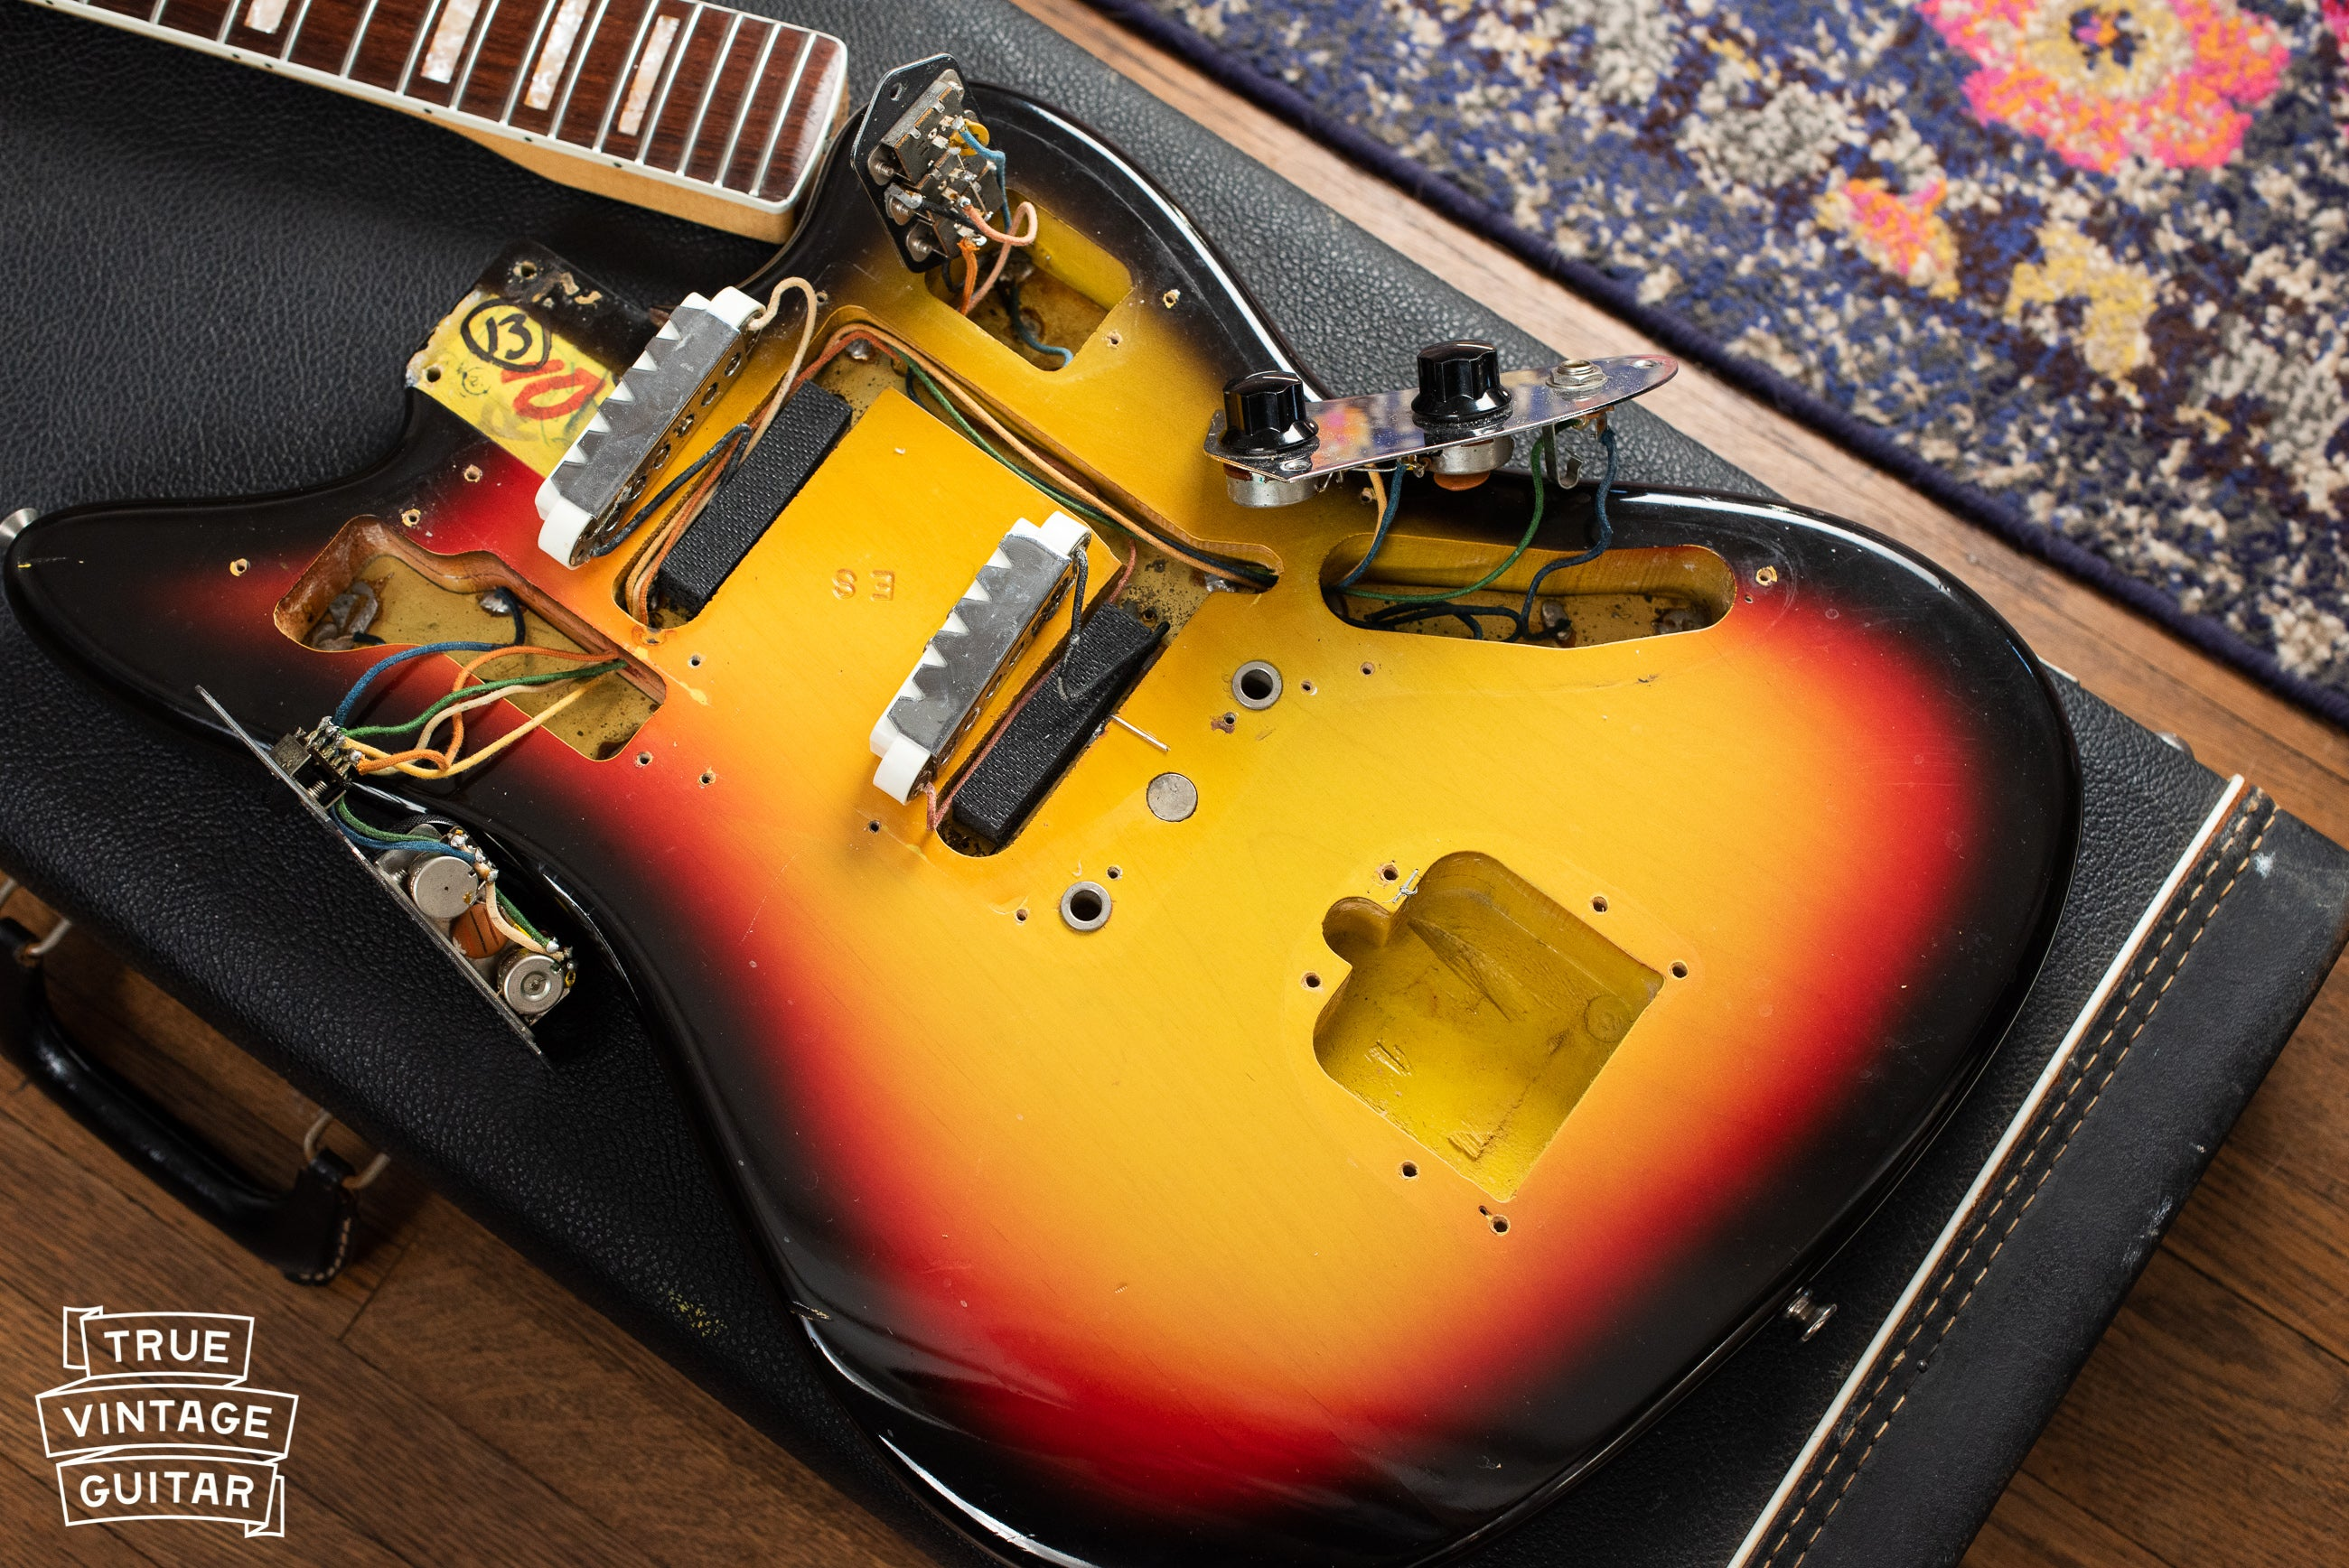 How to sell vintage Fender guitar